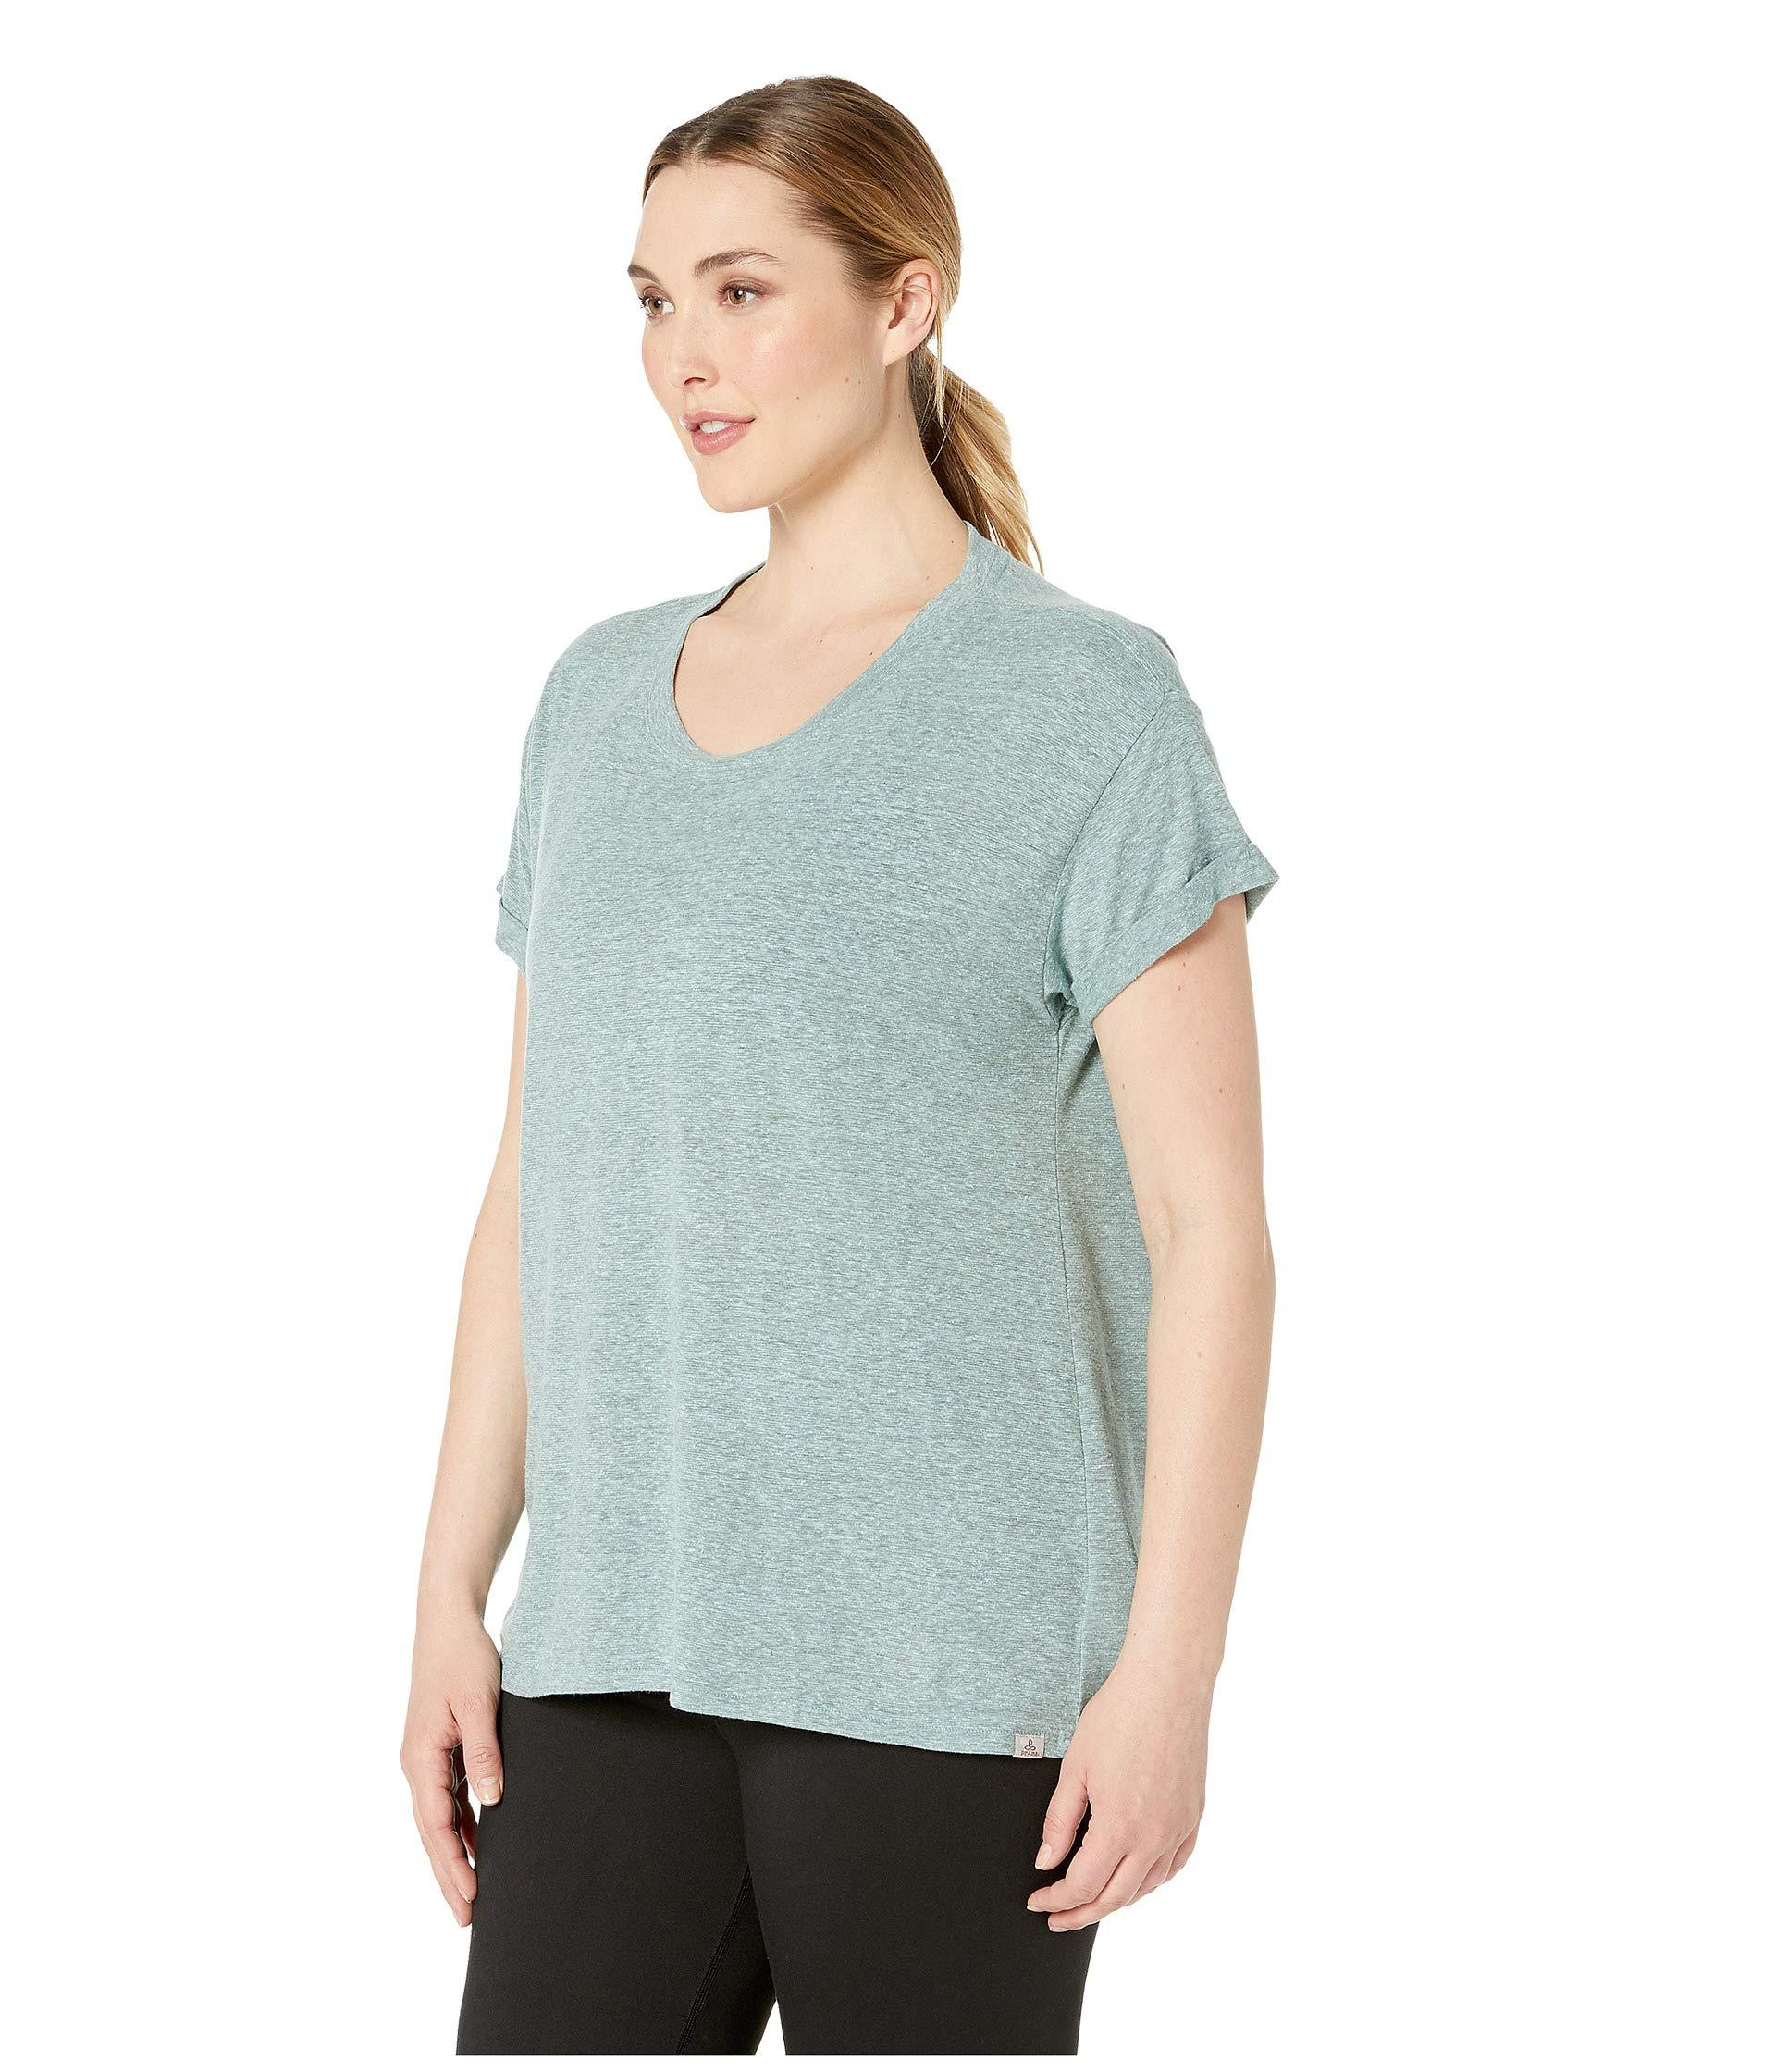 f6f01ea6a Lyst - Prana Plus Size Cozy Up T-shirt (iced Aqua Heather) Women's T Shirt  in Blue